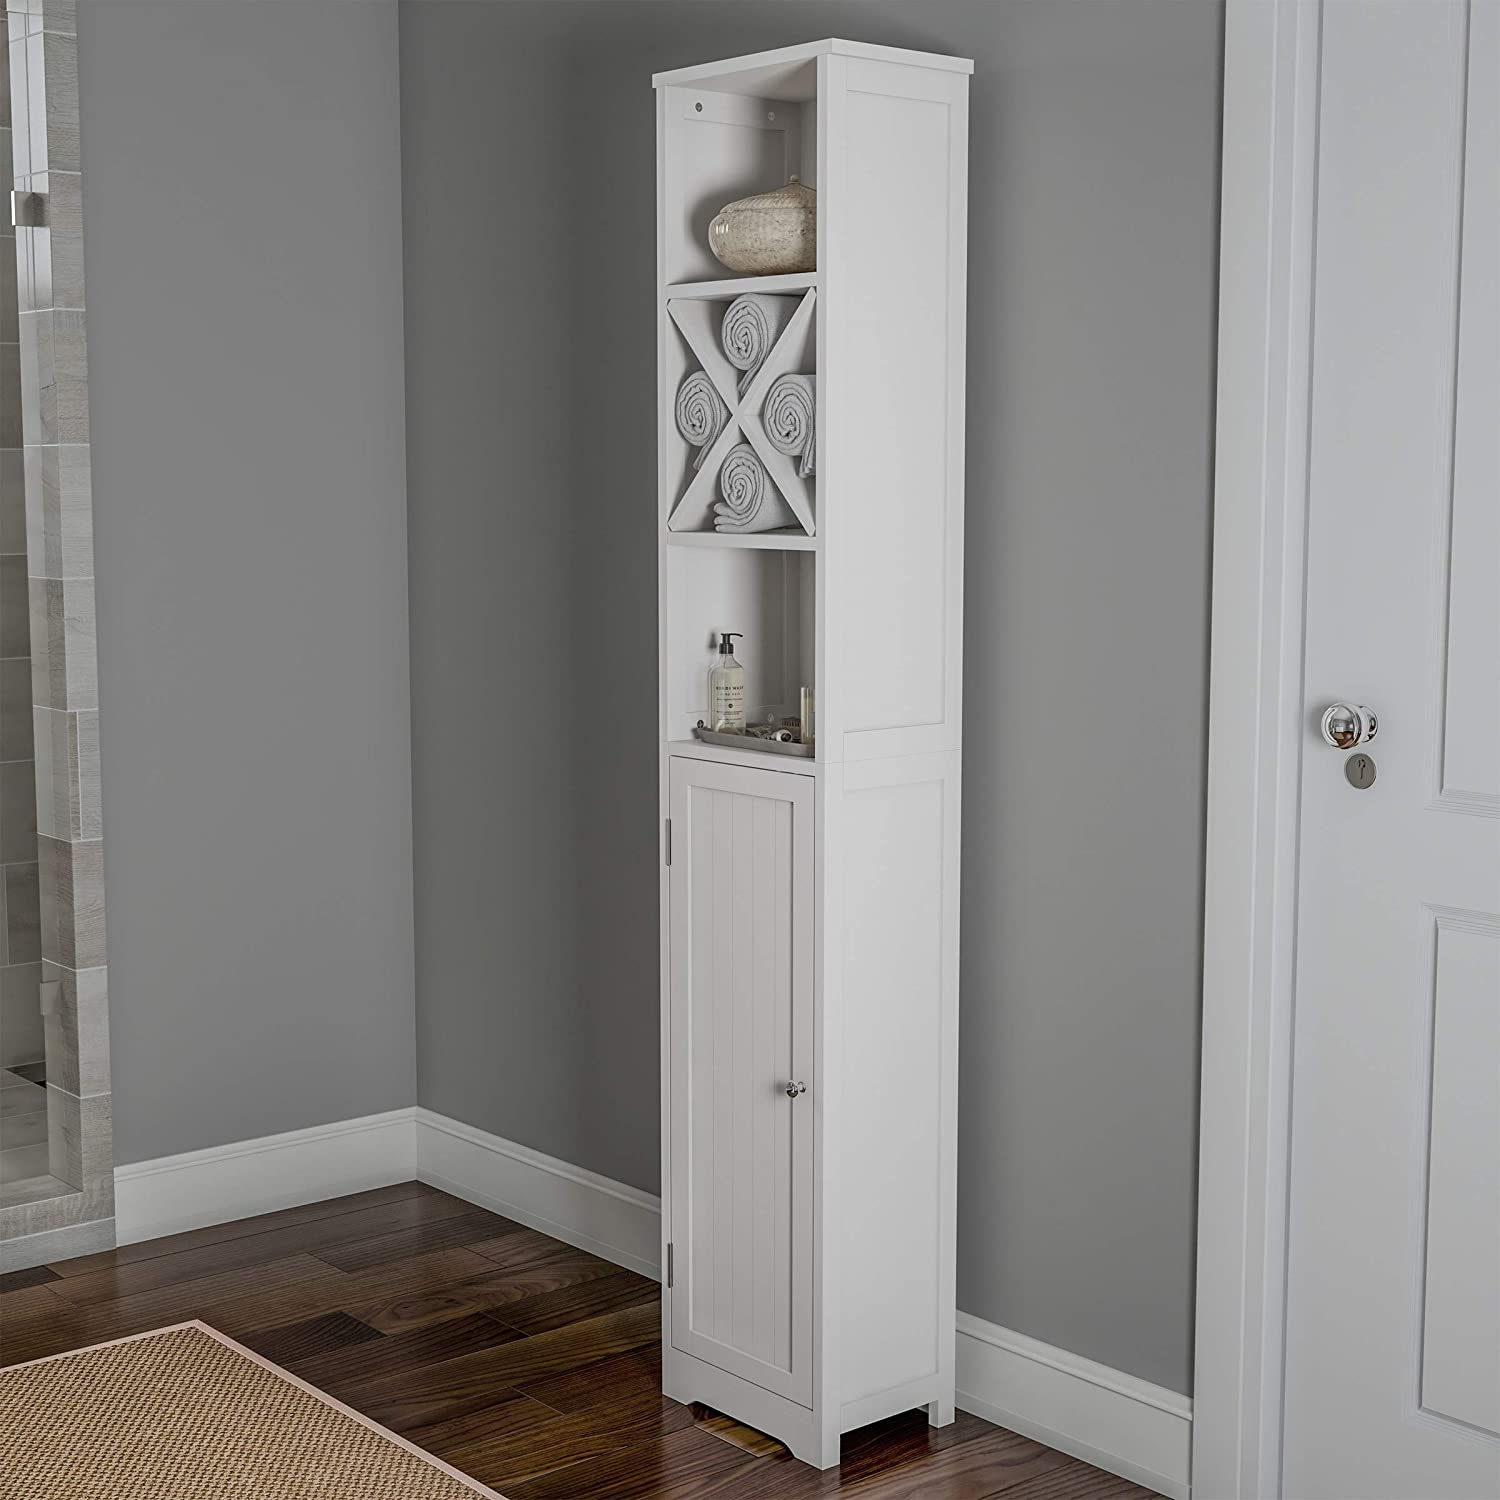 """Lavish Home Linen Tower-67"""" Tall Bathroom or Laundry Room Storage Cabinet with Cubbyhole Divider for Towels-Adjustable Shelves & Cupboard (White), 67"""